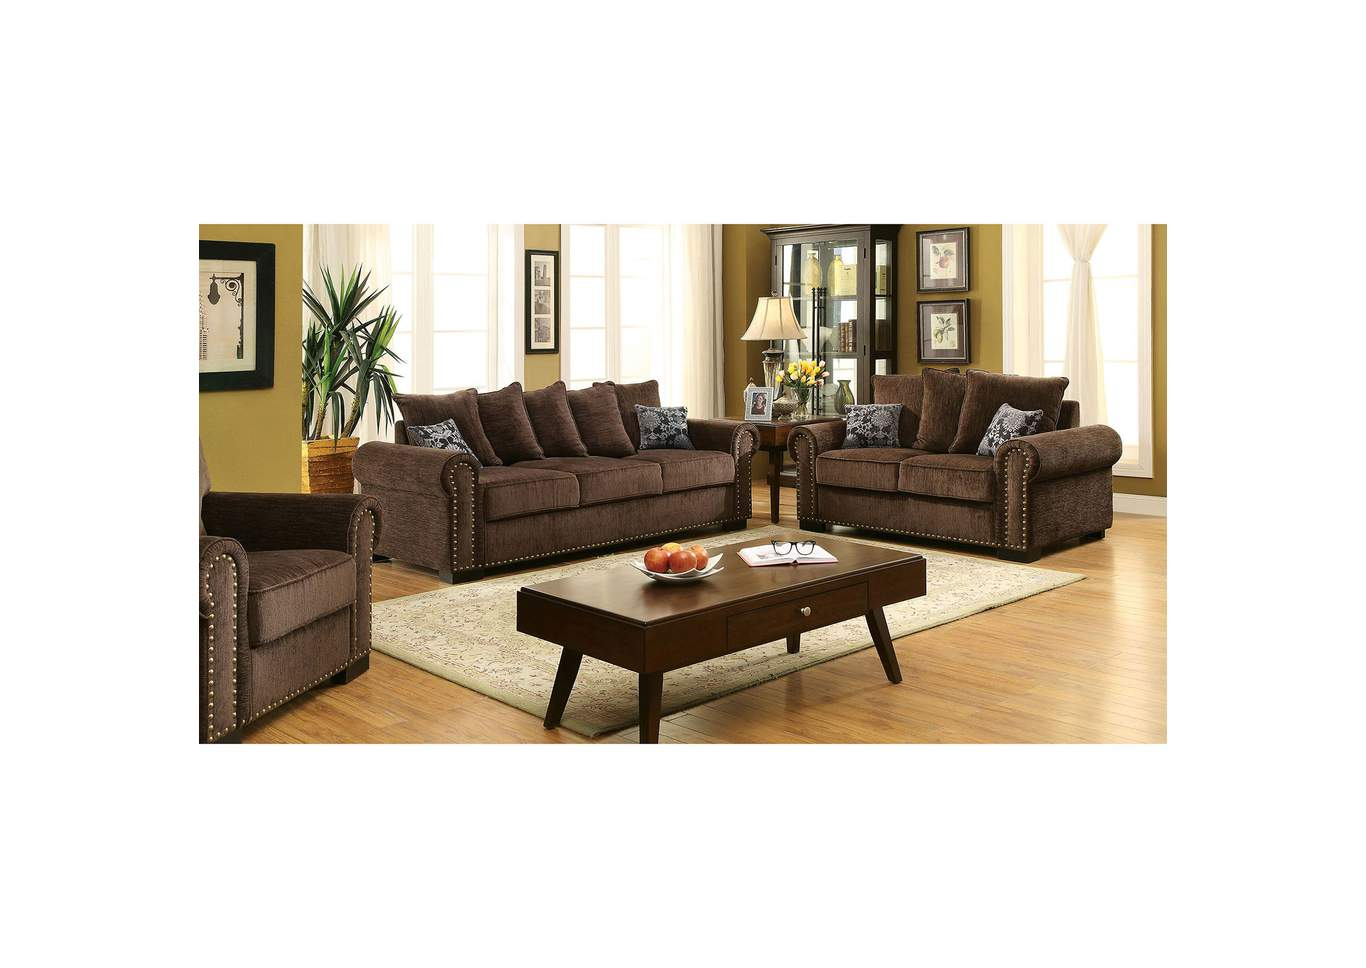 Rydel Brown Chenille Sofa and Loveseat w/Pillows,Furniture of America